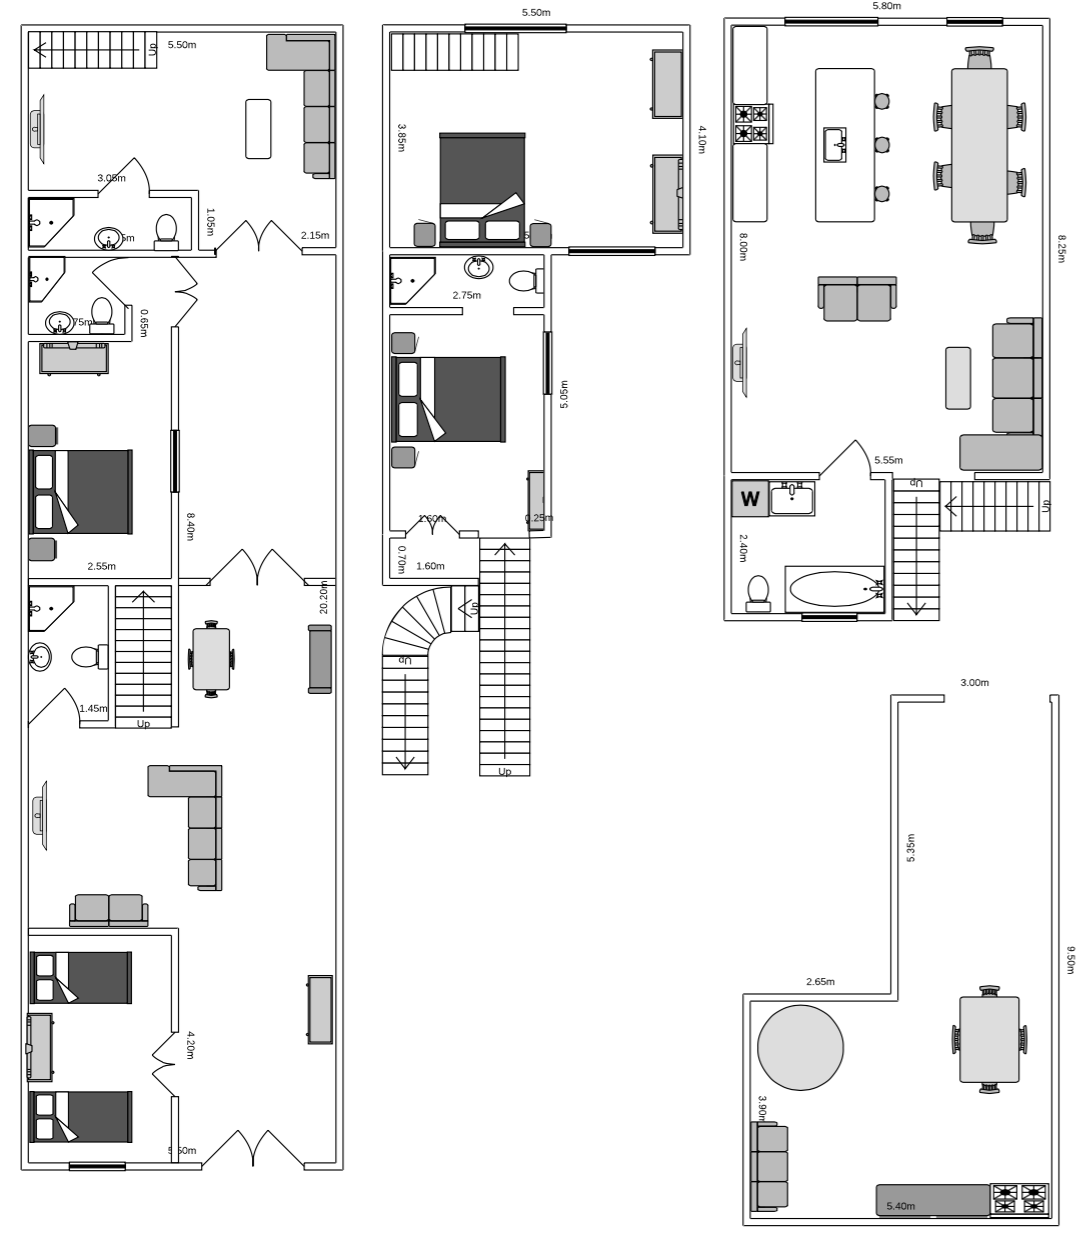 Floor plan for our 3 storey town house in Alicante, Spain